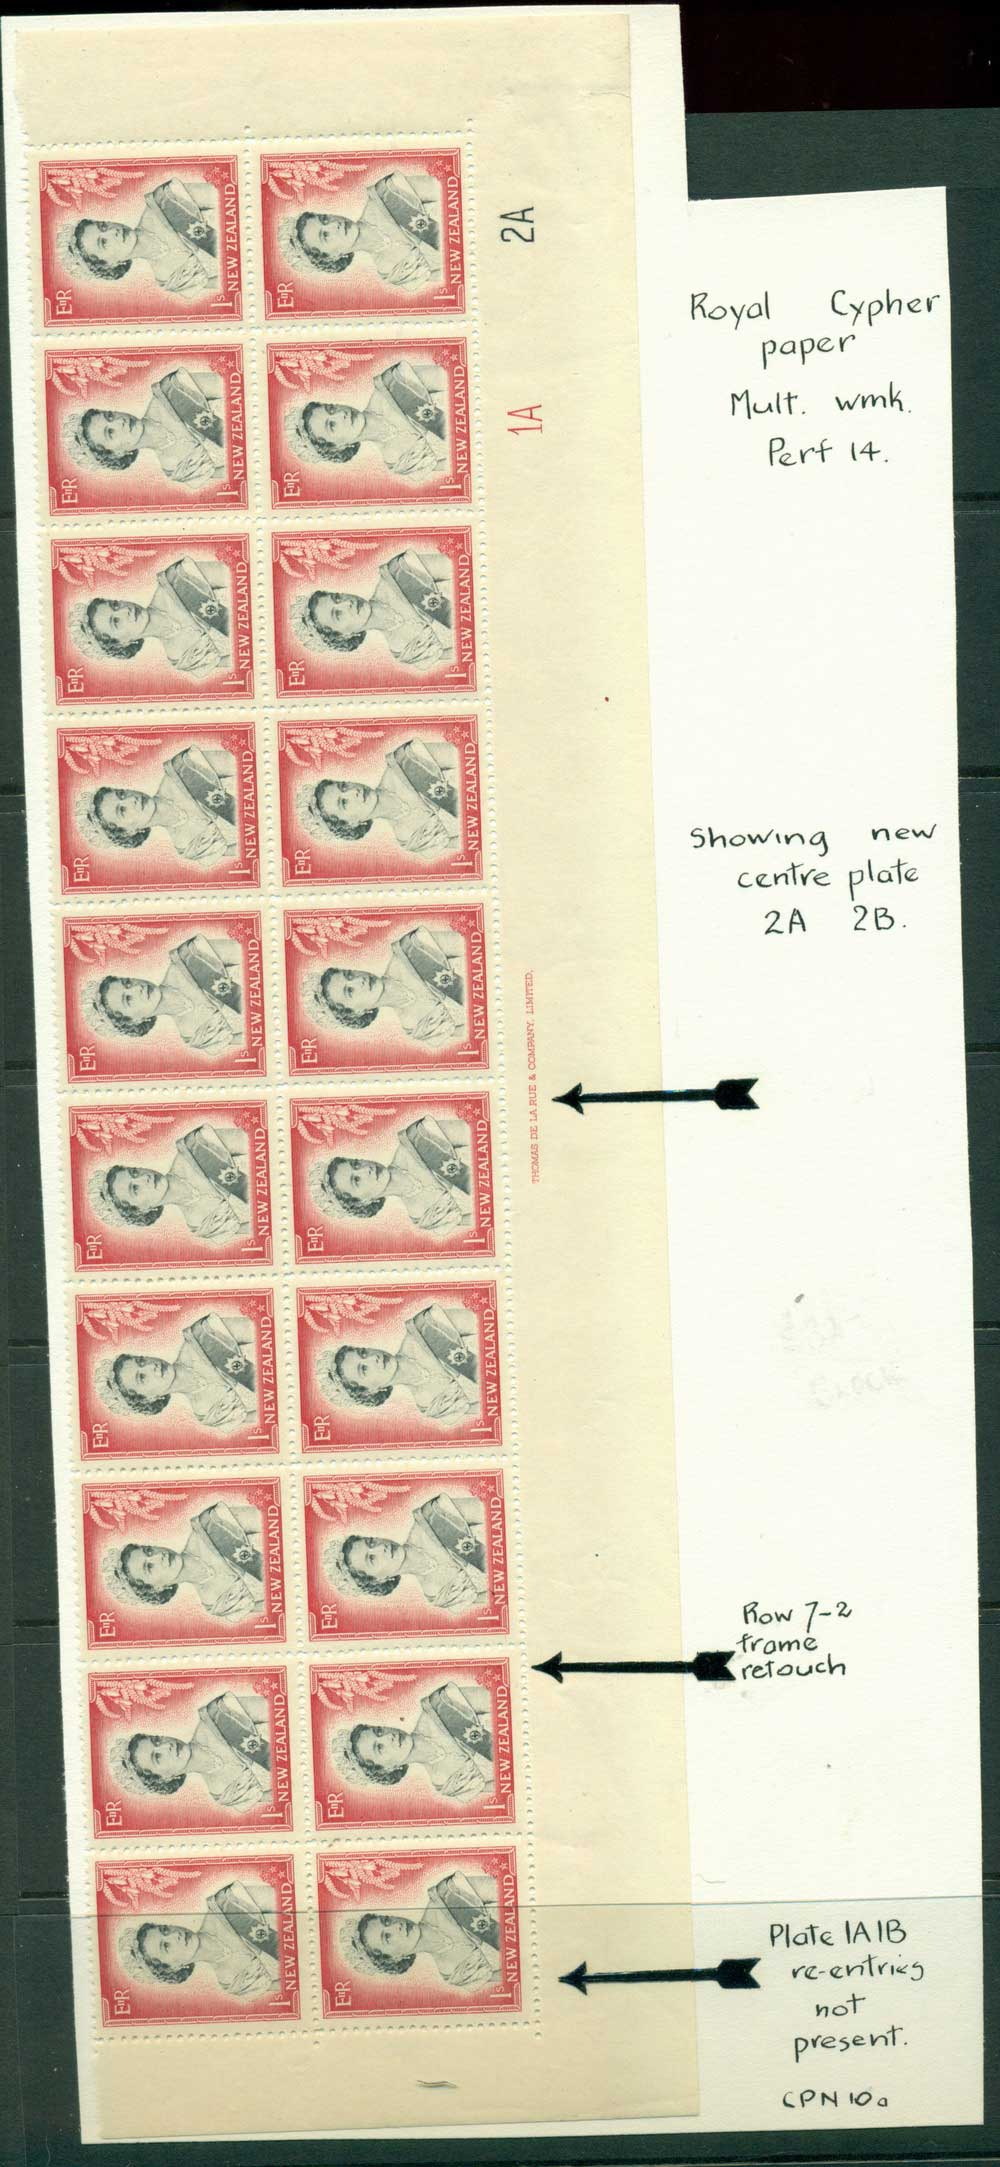 New Zealand 1954 QEII 1/- Black & Carmine Plate 1A 2A Gutter & Imprint Block 20 MH/MUH Lot25735